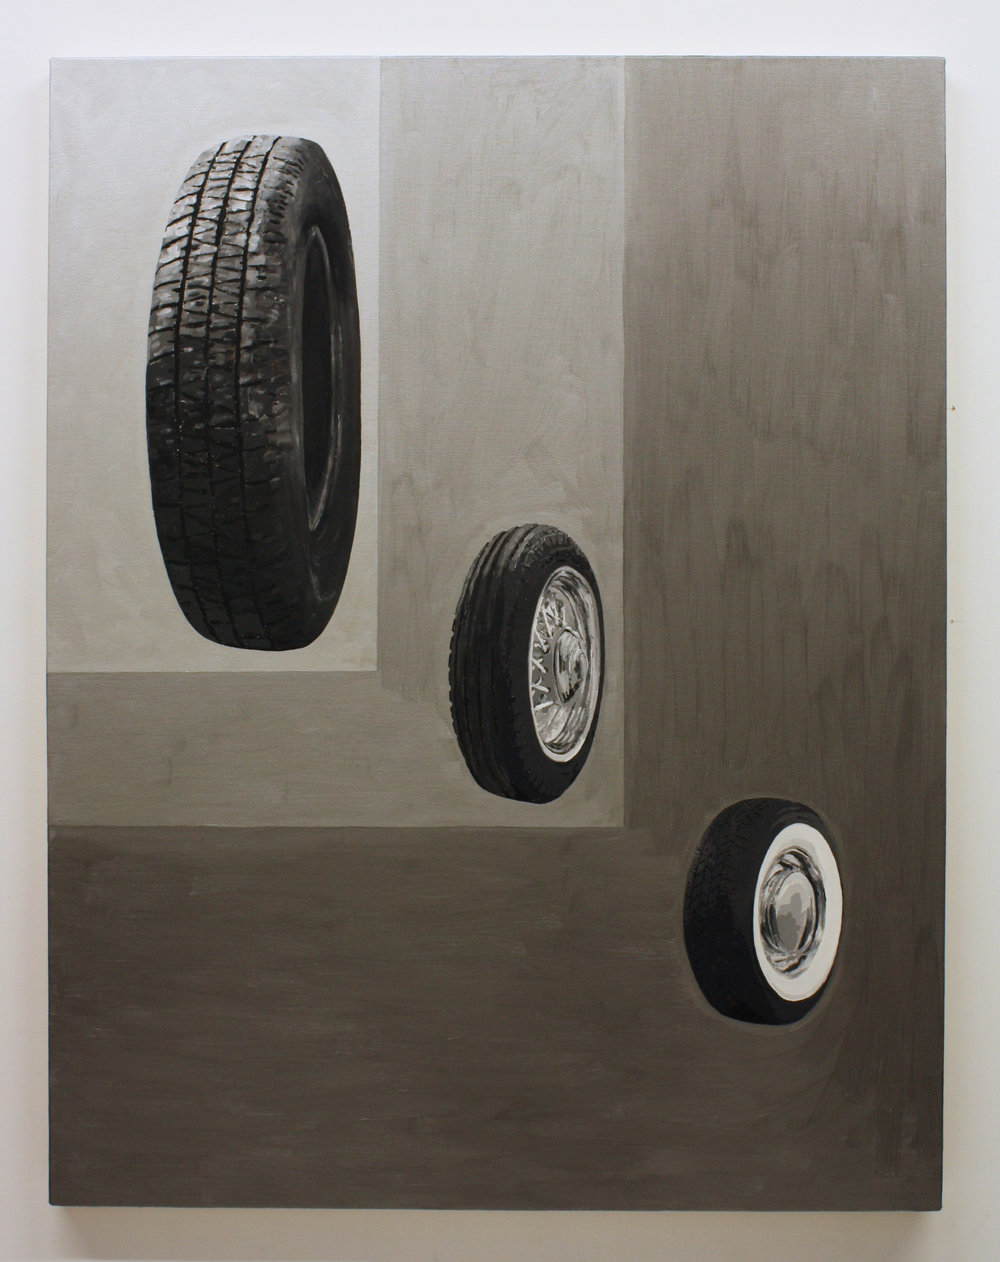 """Untitled, (3 Tires)"", 2017 , oil on canvas, 60 x 46 inches"